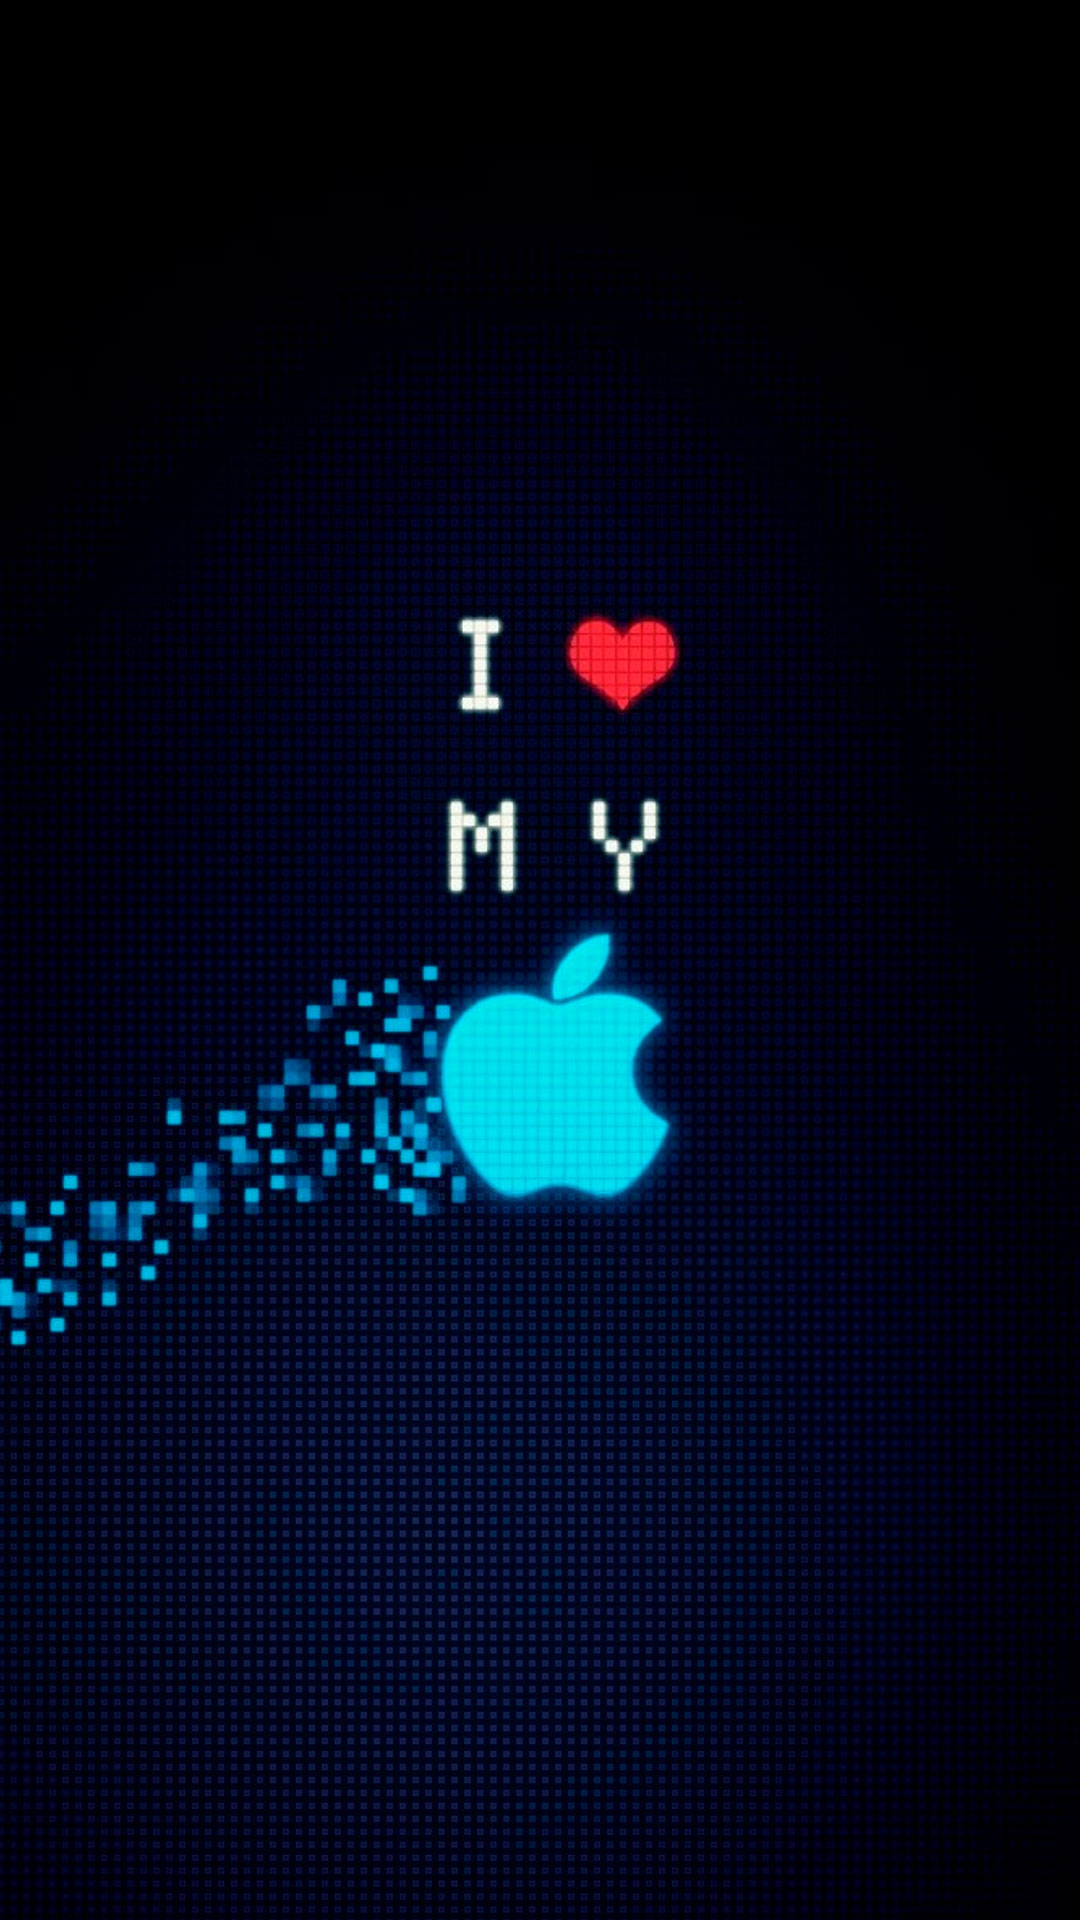 iPhone wallpaper apple logo heart Apple Logo